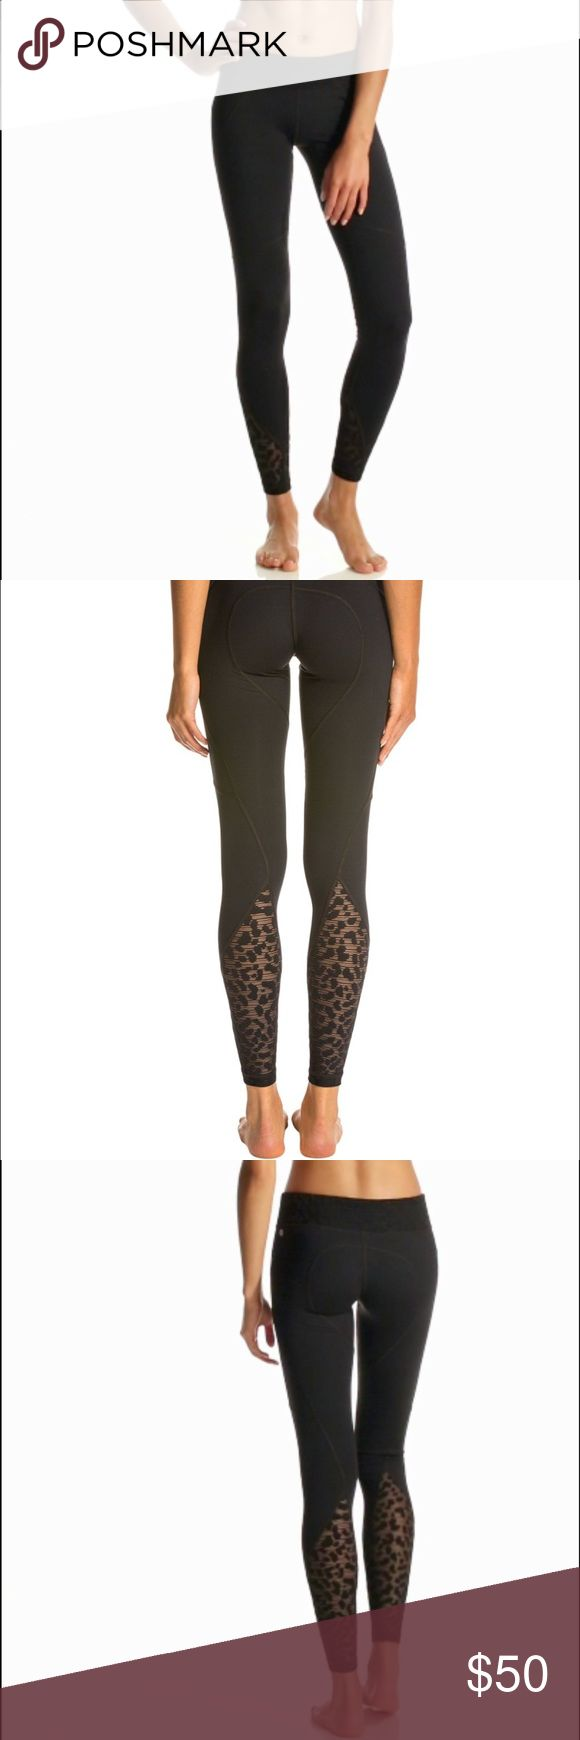 Vimmia Leopard Lace Yoga Leggings (like Lululemon) For Sale: New Without Tags Vimmia Leopard Lace Composure Yoga Leggings. Size medium, fits like a small (4-6) . Bought these online at Saks and when I got them I threw them in the wash and totally forgot about them. They have never been worn out, they run too small for me. Retail was $123! Very similar to Lululemon quality. lululemon athletica Pants Leggings